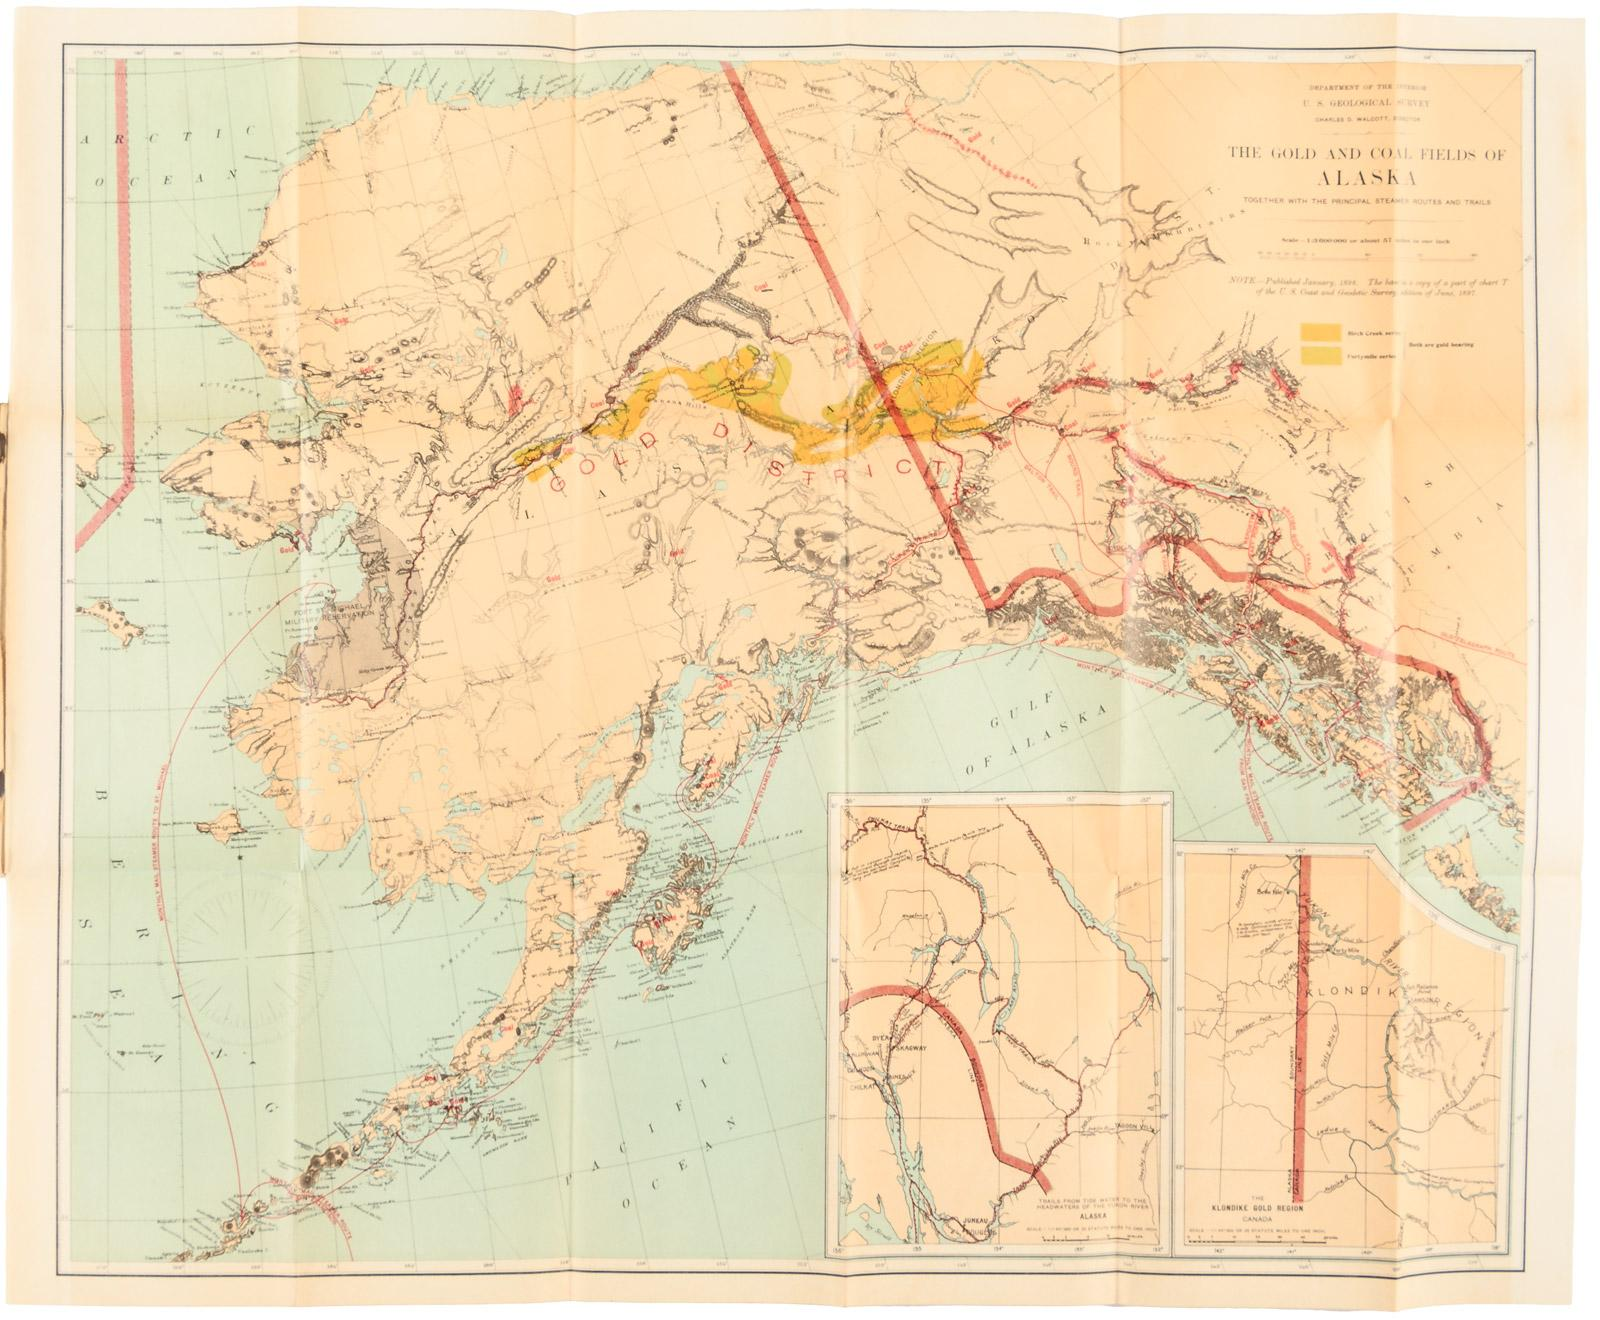 Map of alaska showing known gold bearing rocks with descriptive text map of alaska showing known gold bearing rocks with descriptive text containing sketches of the geography geology and gold deposits and routes to the gold gumiabroncs Images